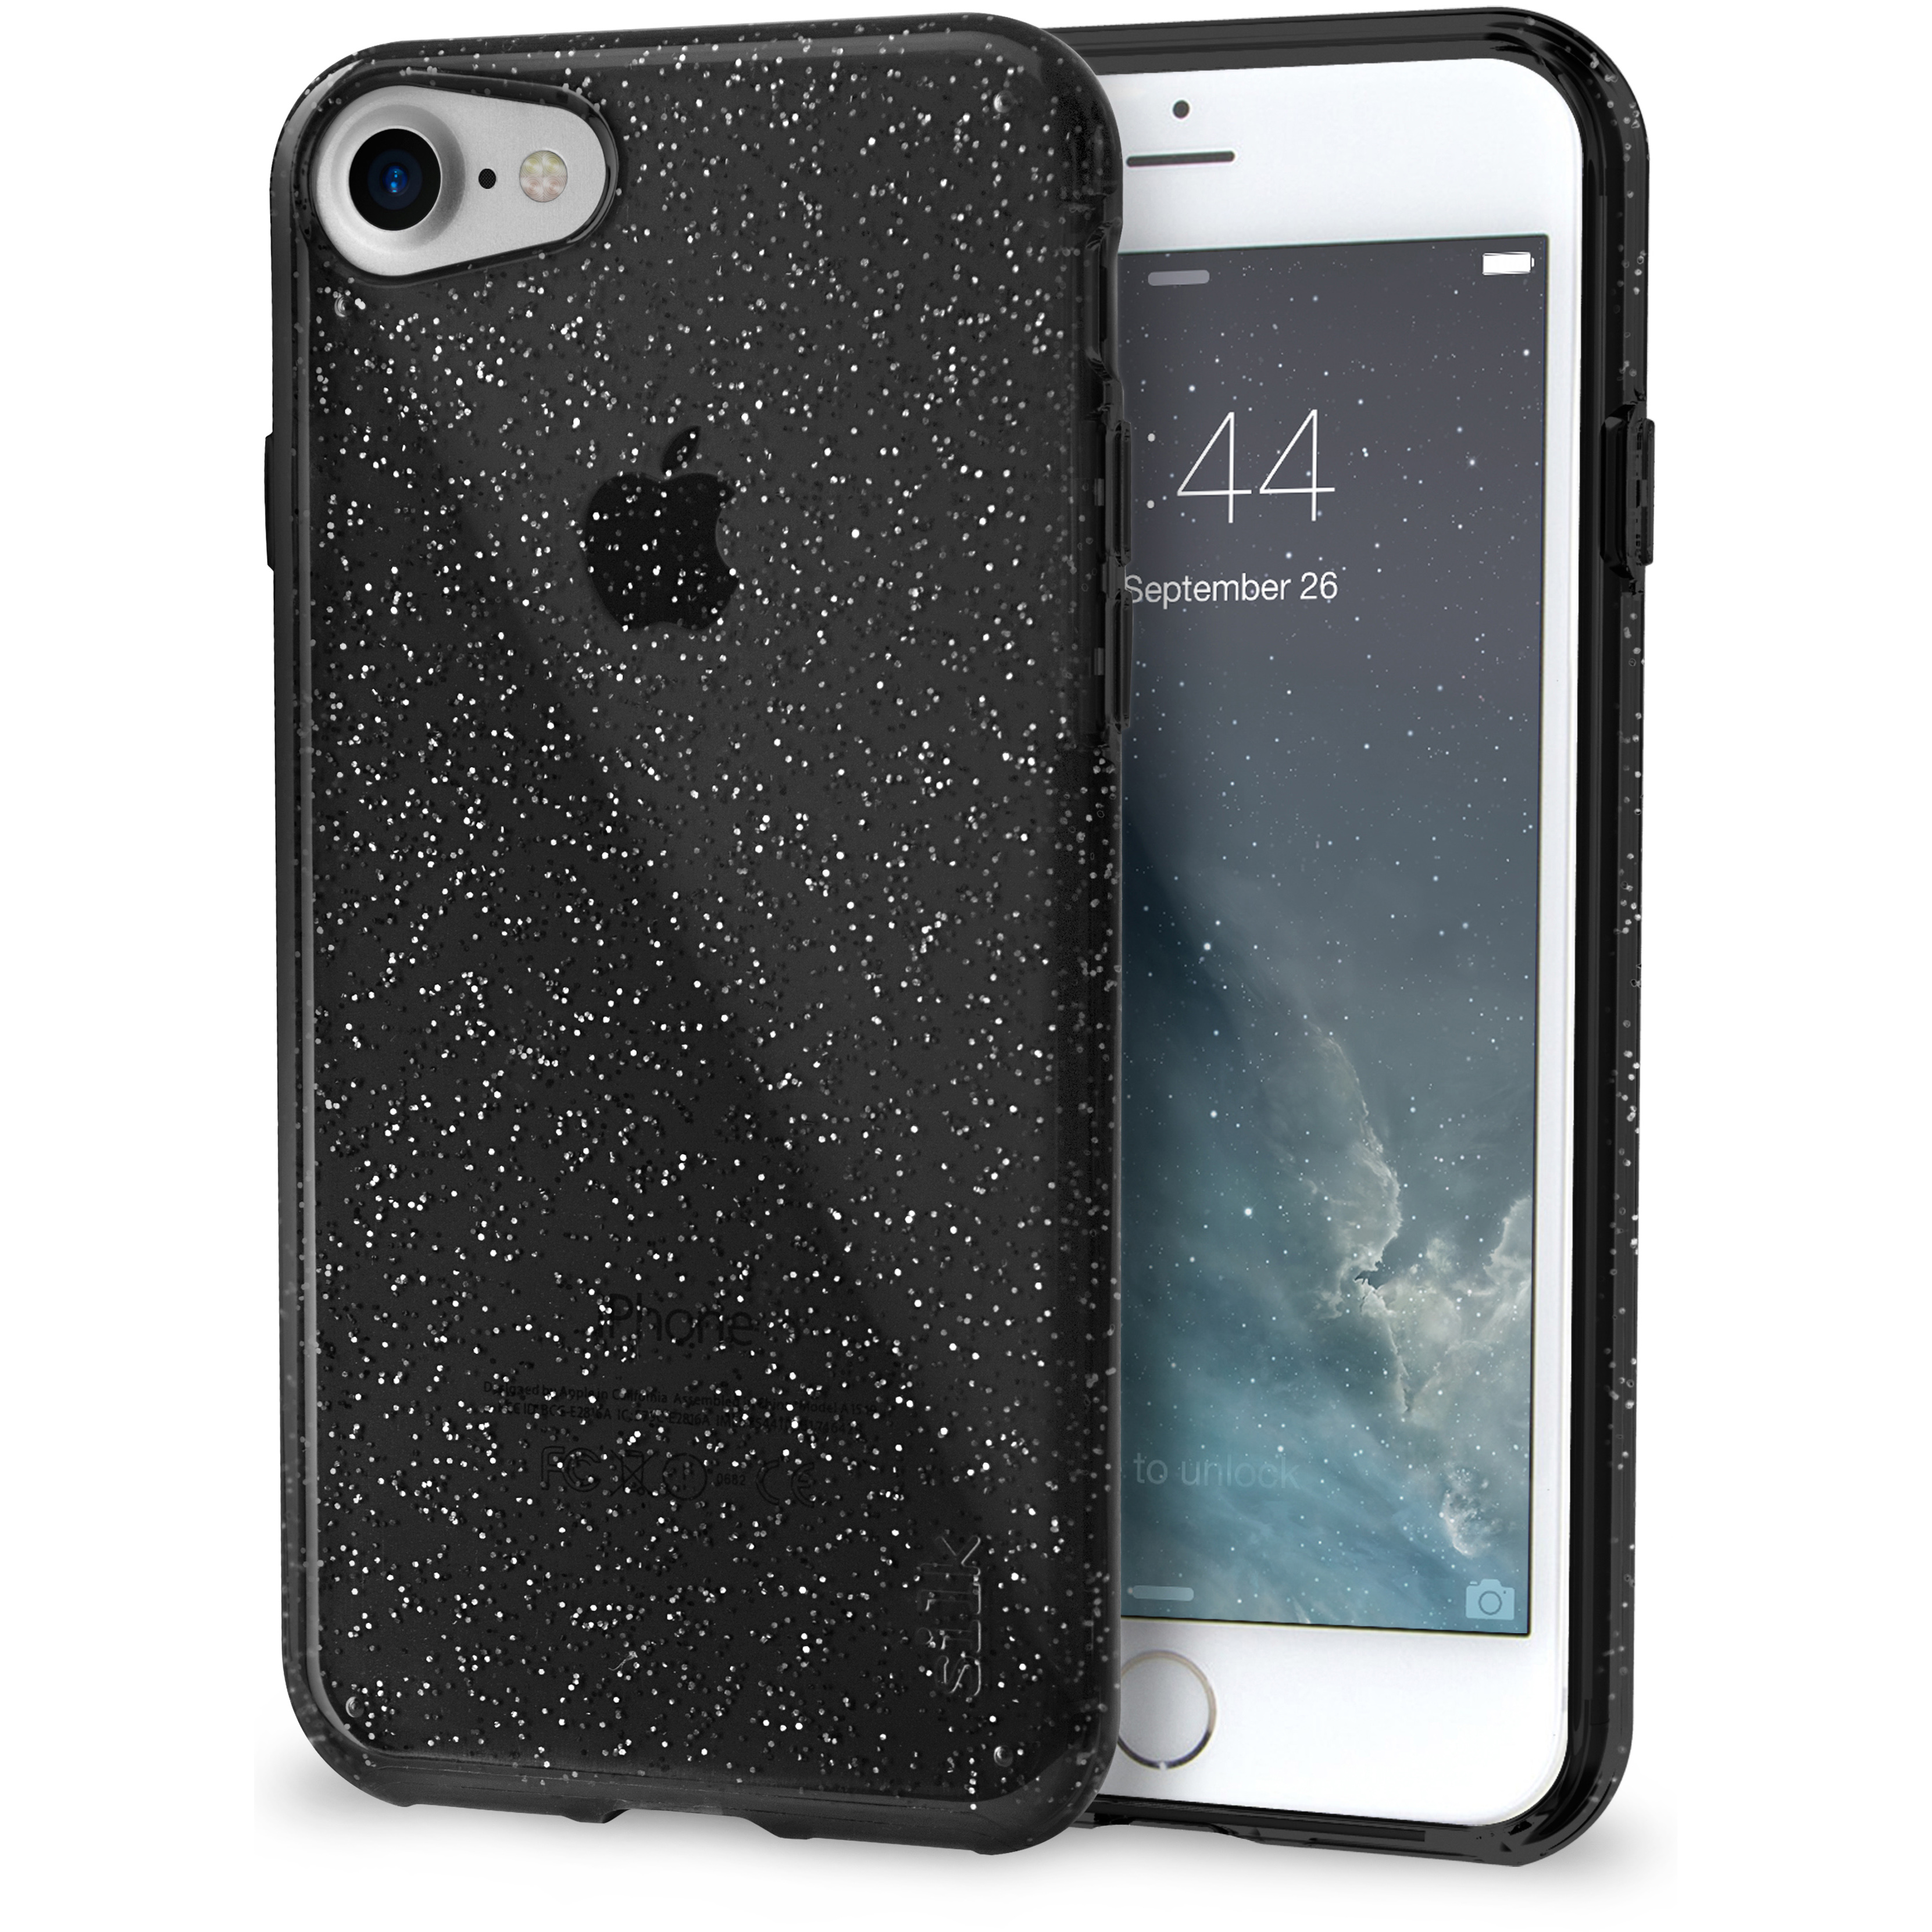 Silk iPhone 7/8 Glitter Case - PureView for iPhone 7/8 [Ultra Slim Fit Clear Sparkle Cover] - Smoked Silver